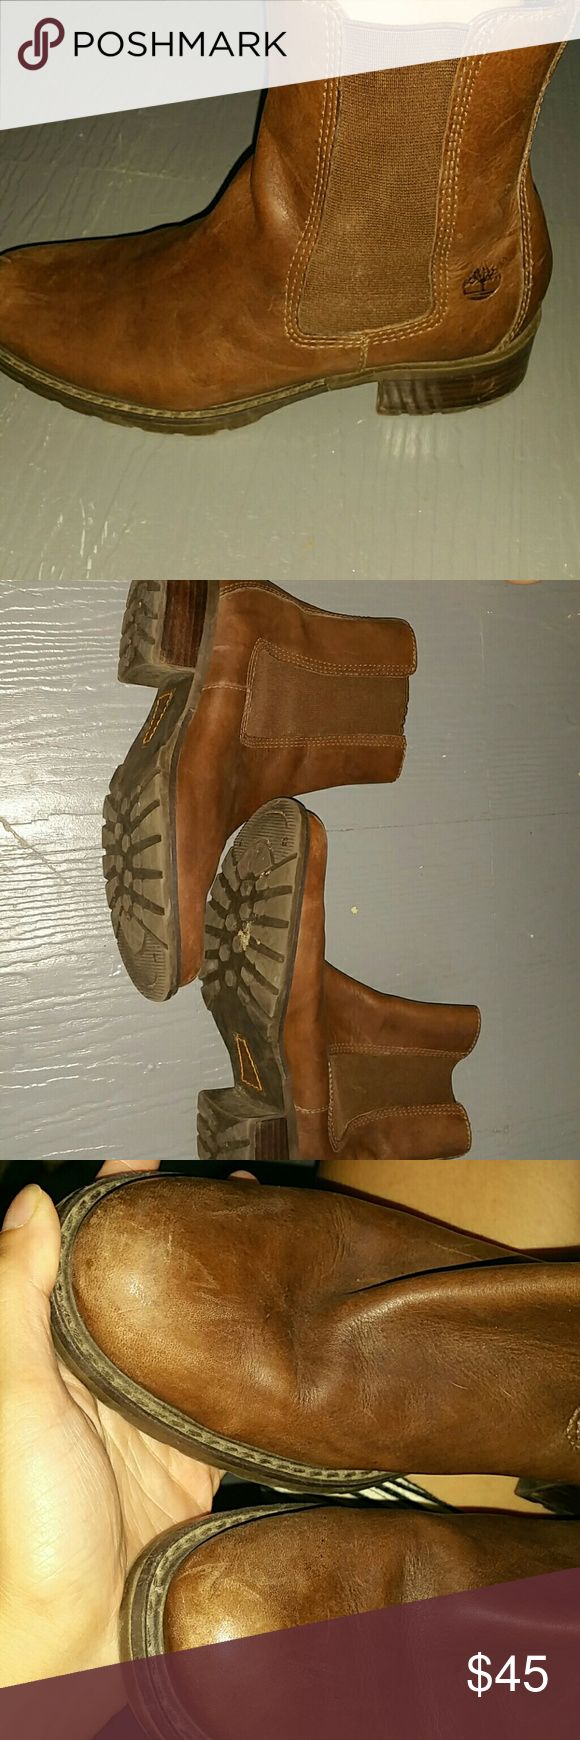 Chocolate Brown Timberland Boots Used good condition leather boots. Size 6.5 genuine leather. Scuffing on front part of boot Timberland Shoes